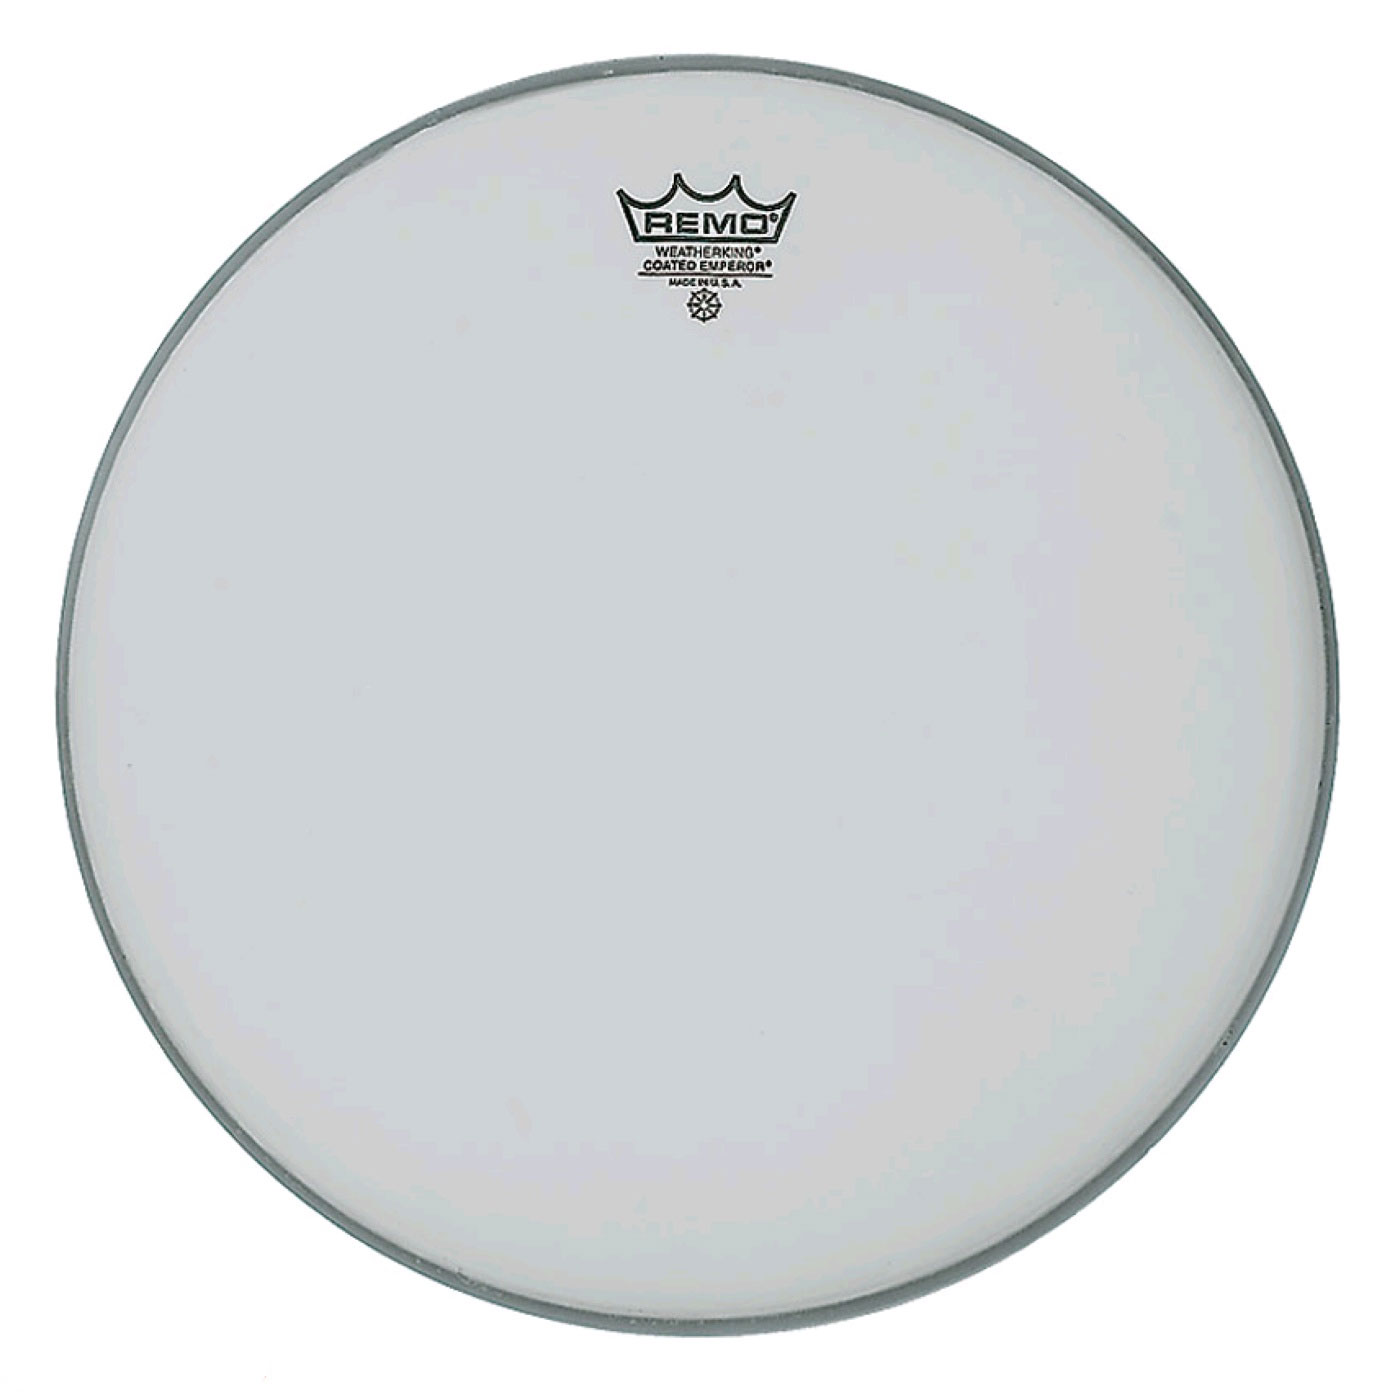 "Remo 14"" Emperor Coated Drum Head"